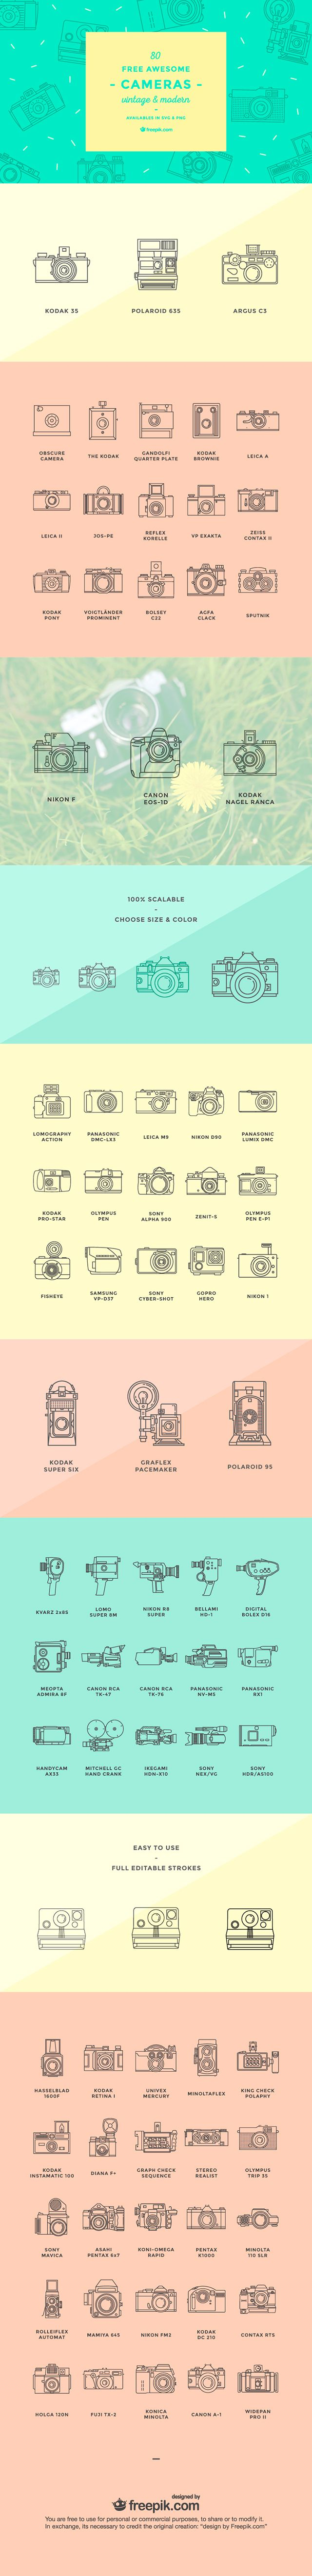 25+ best ideas about Camera Outline on Pinterest.